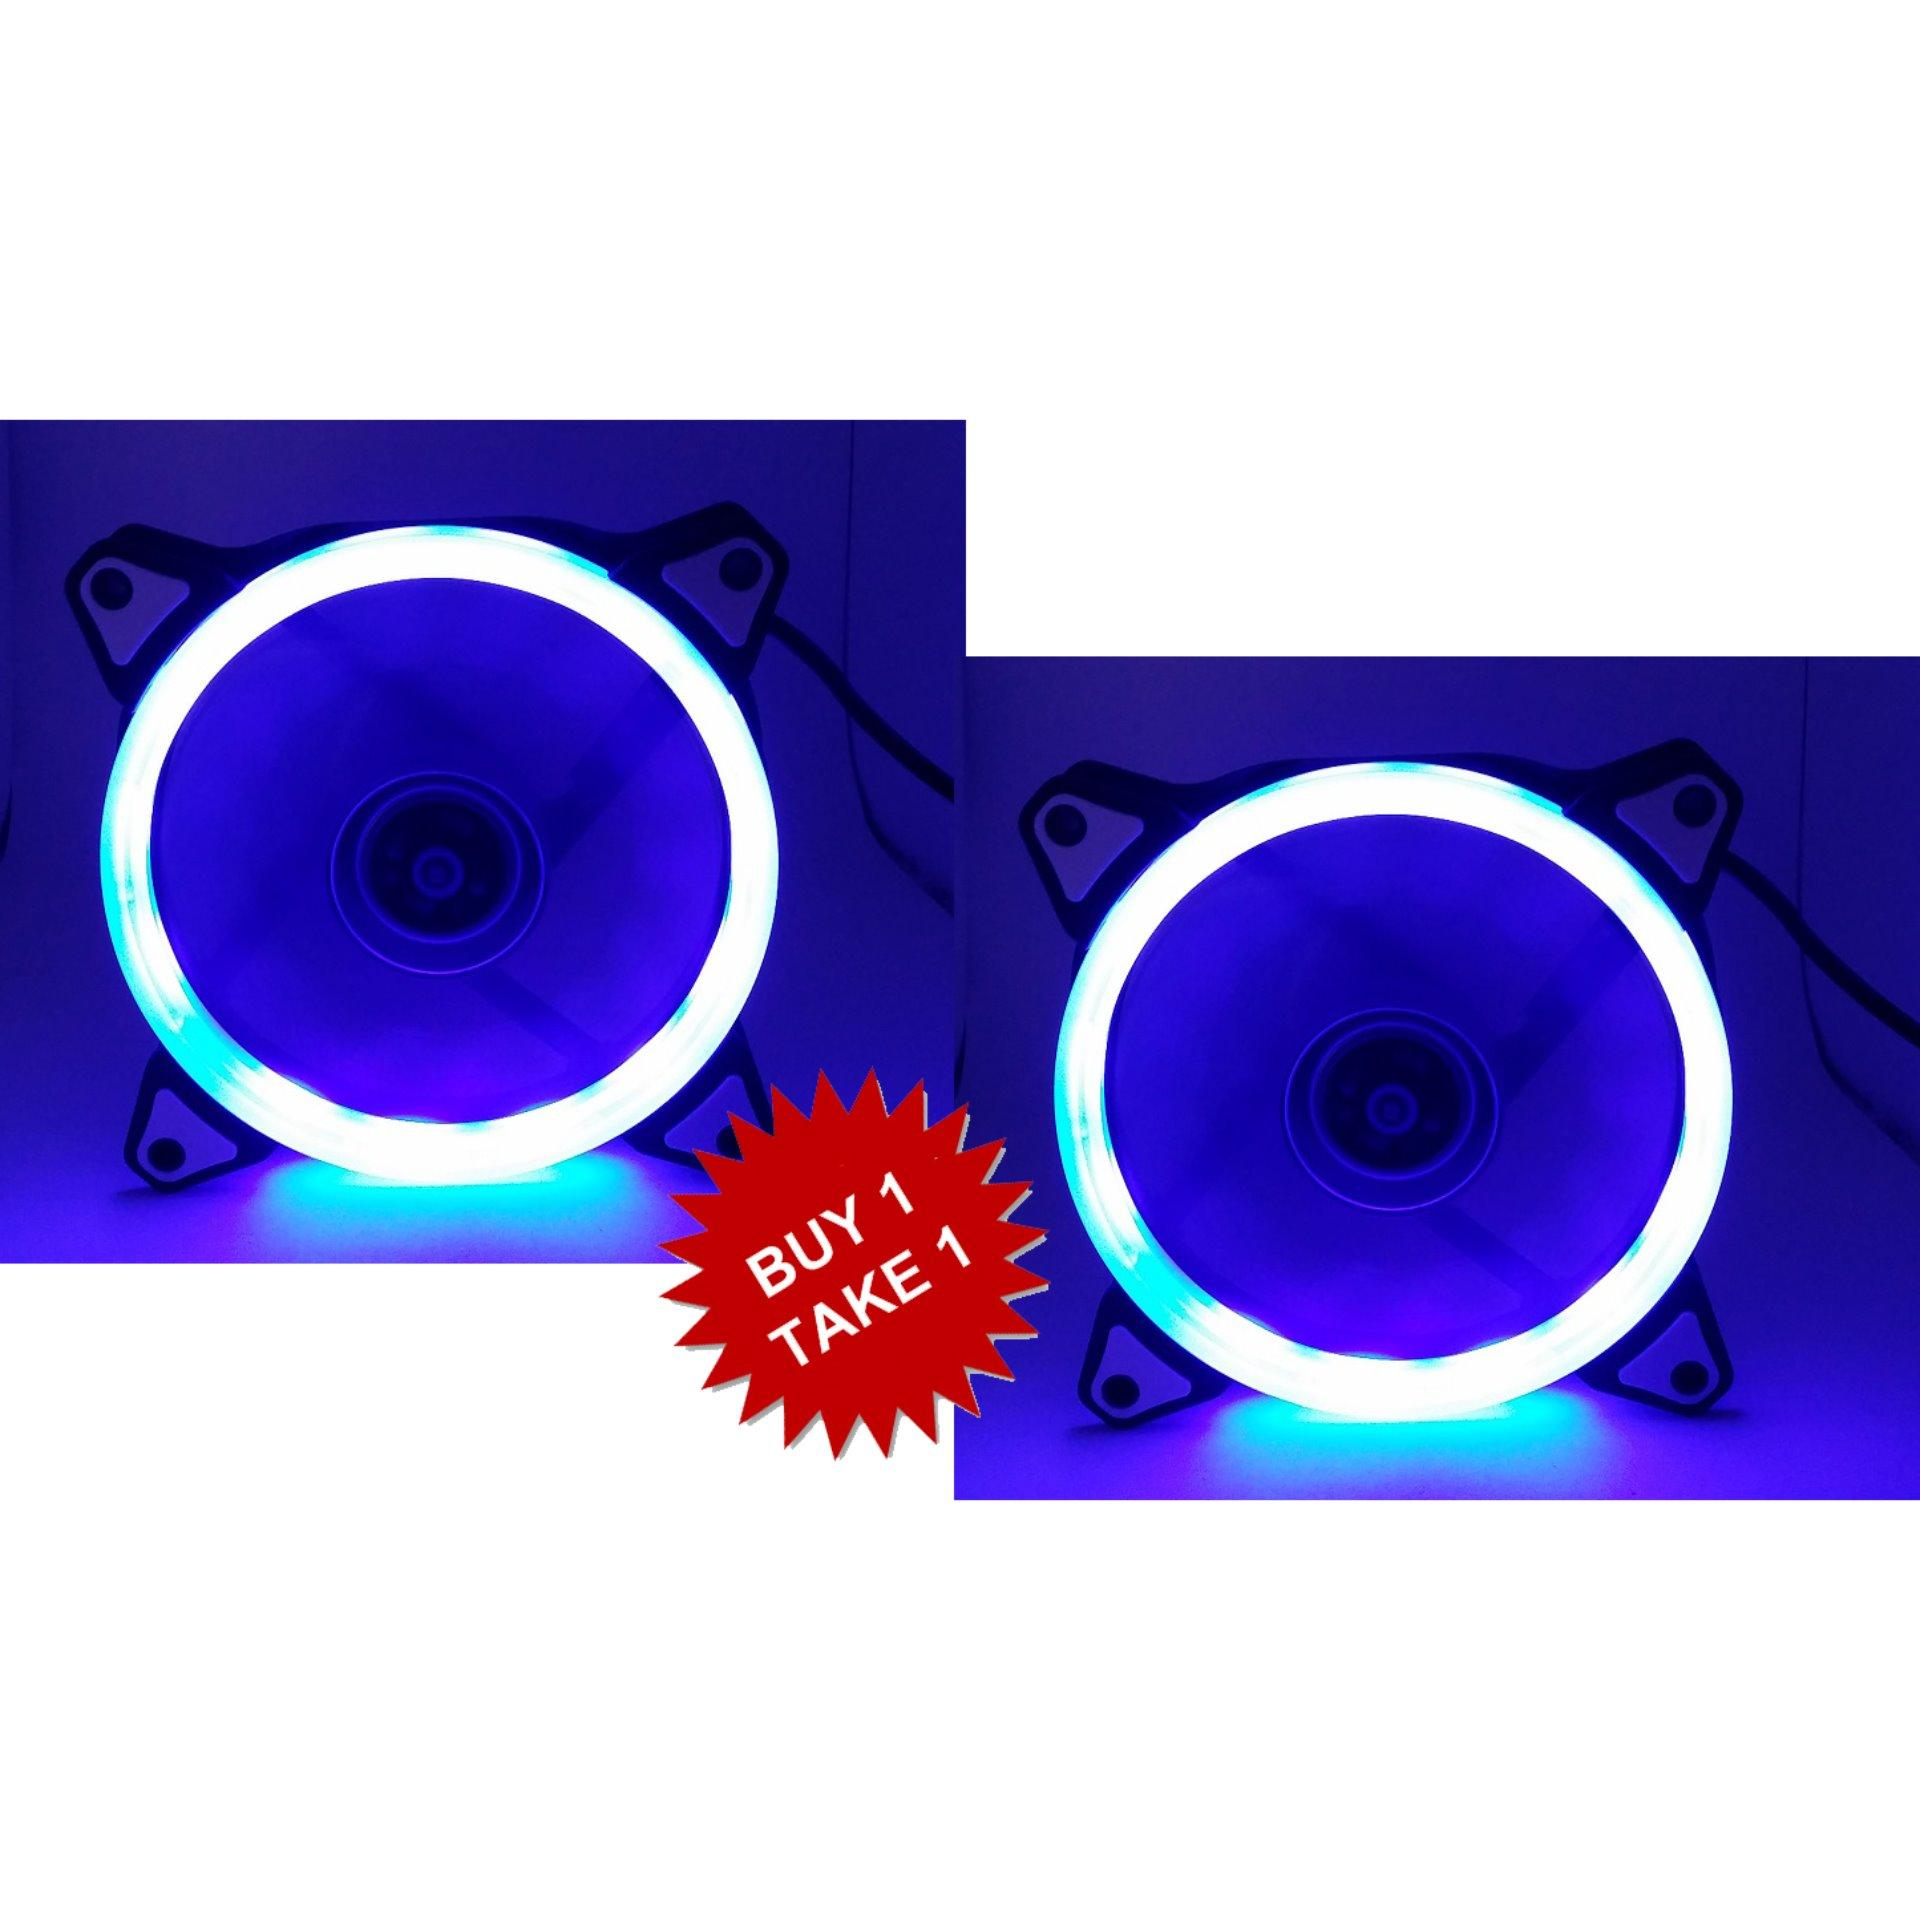 Deepcool Wind Blade Red Led With Hydro Bearing Fan Case 12 Cm Spec Segotep Casing Yf 12cm 120mm Cpu Blue Blades Circle Buy 1 Take